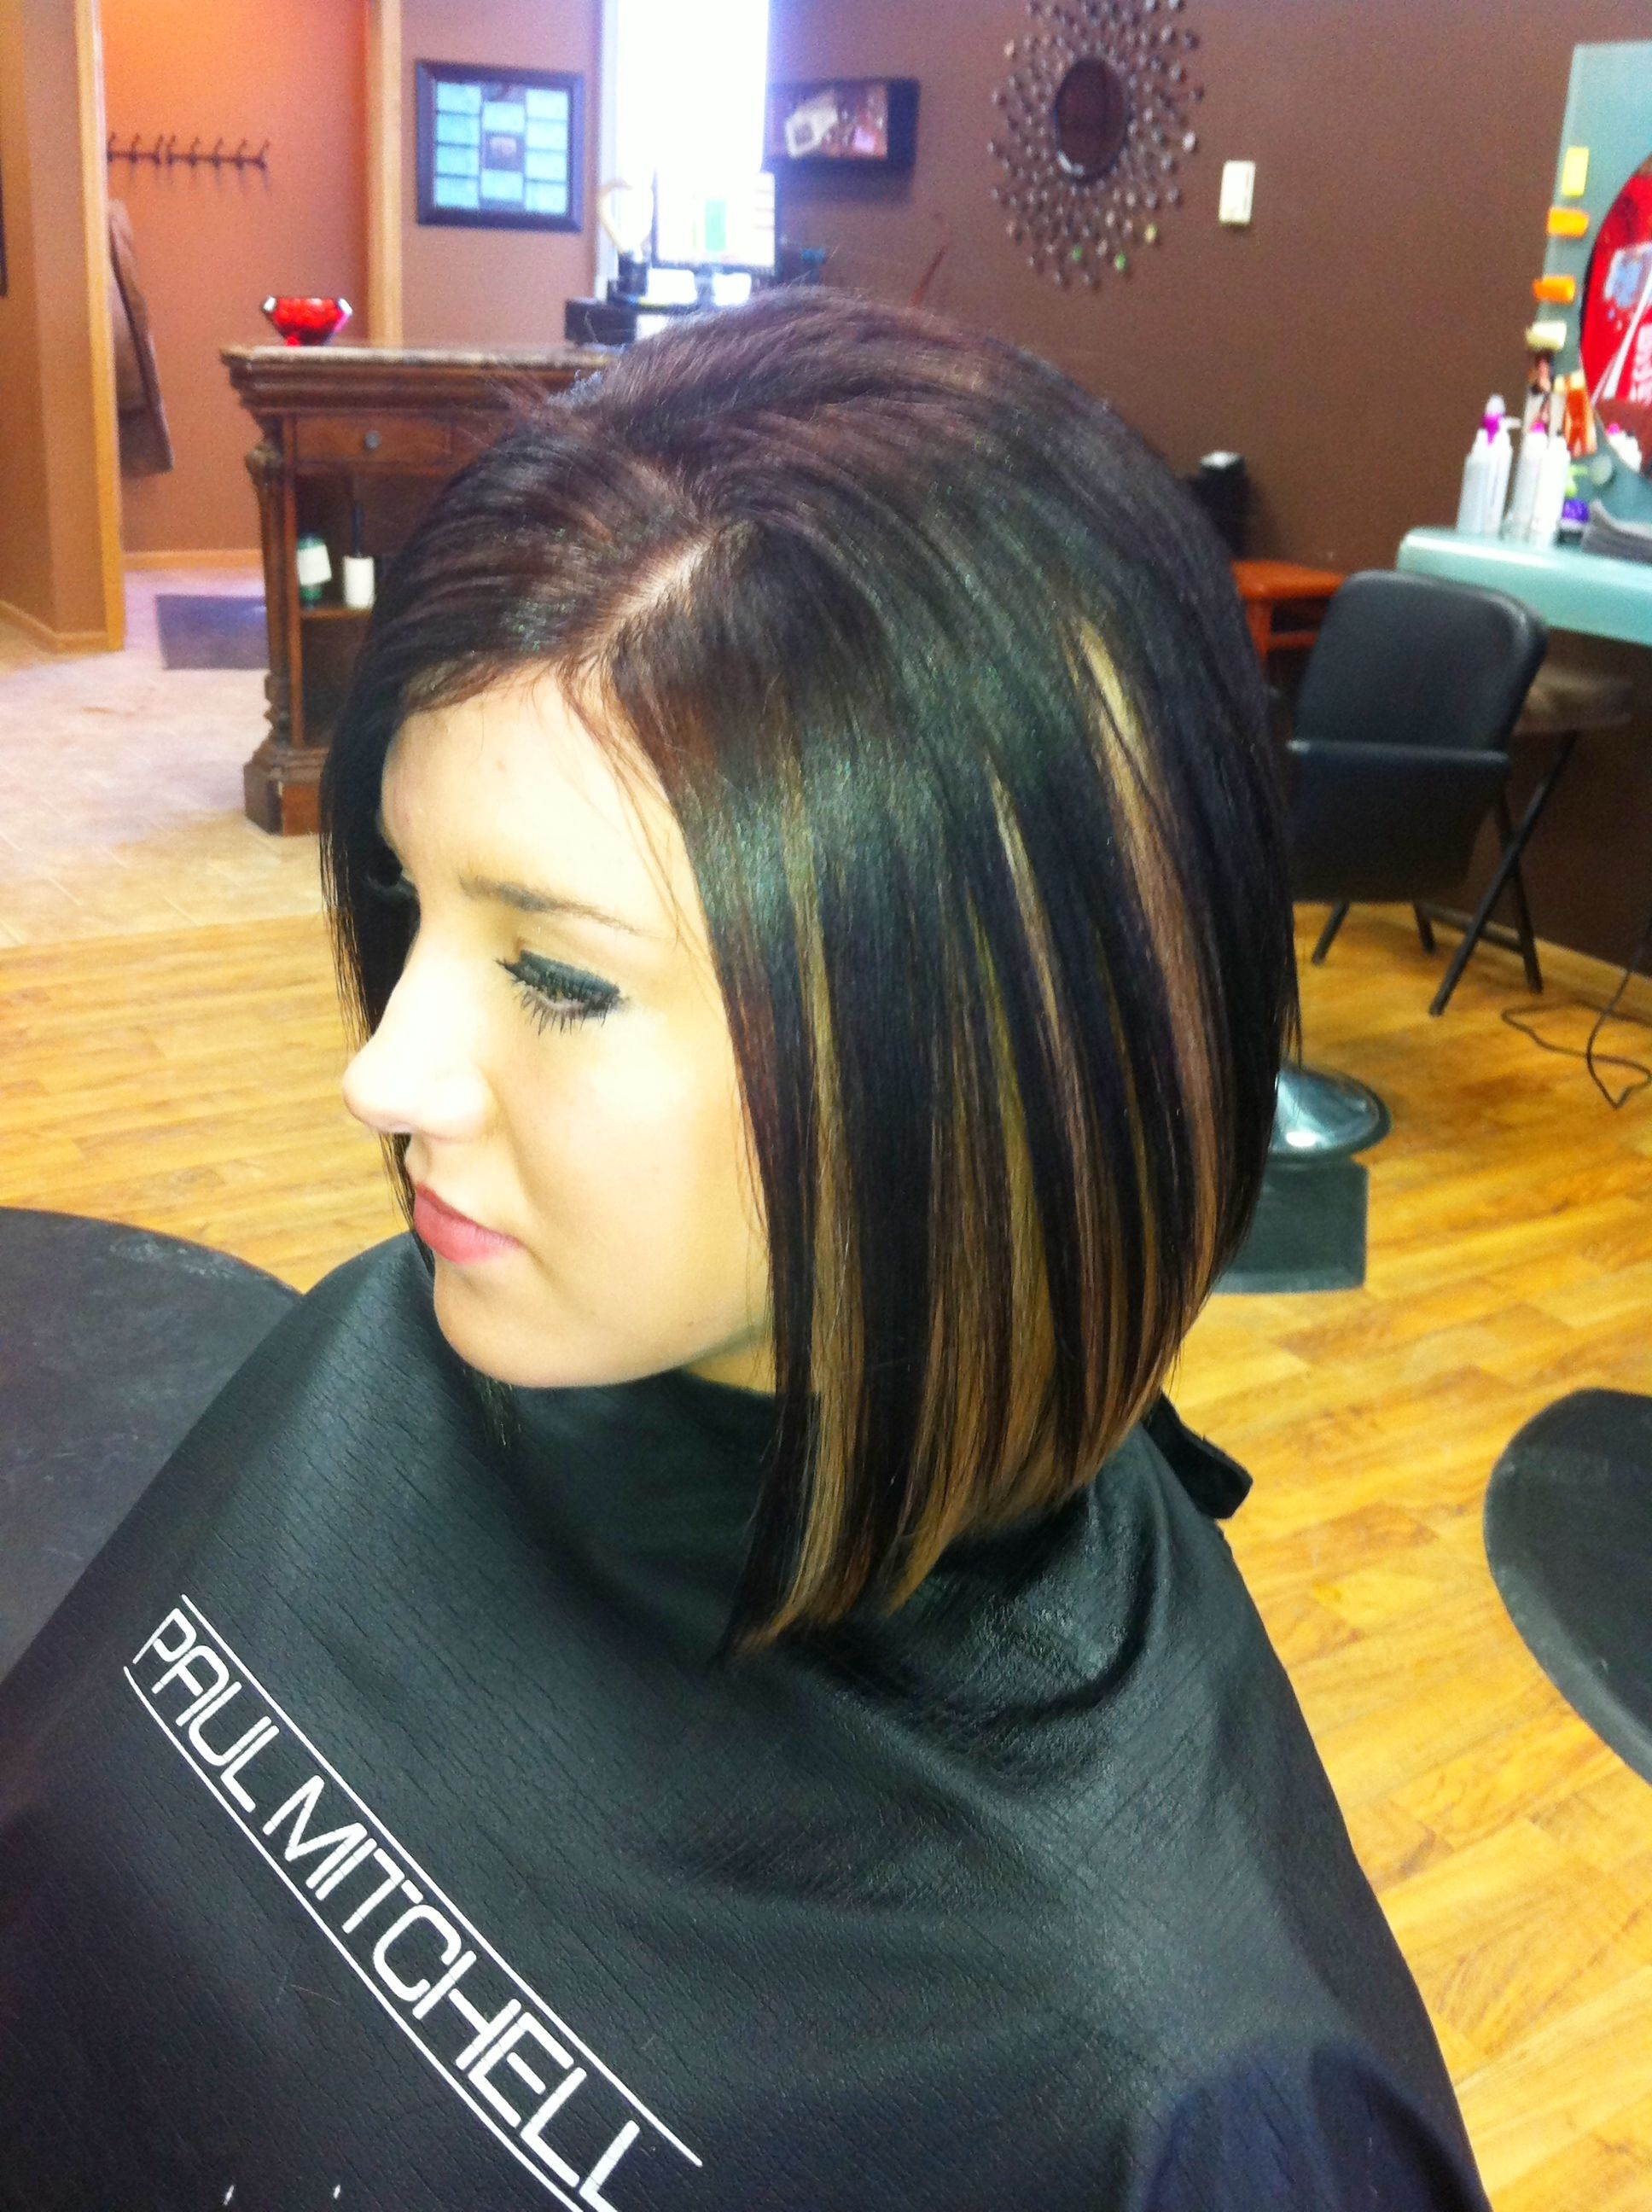 Medium Bob I Think I Want This Cut But Not The High